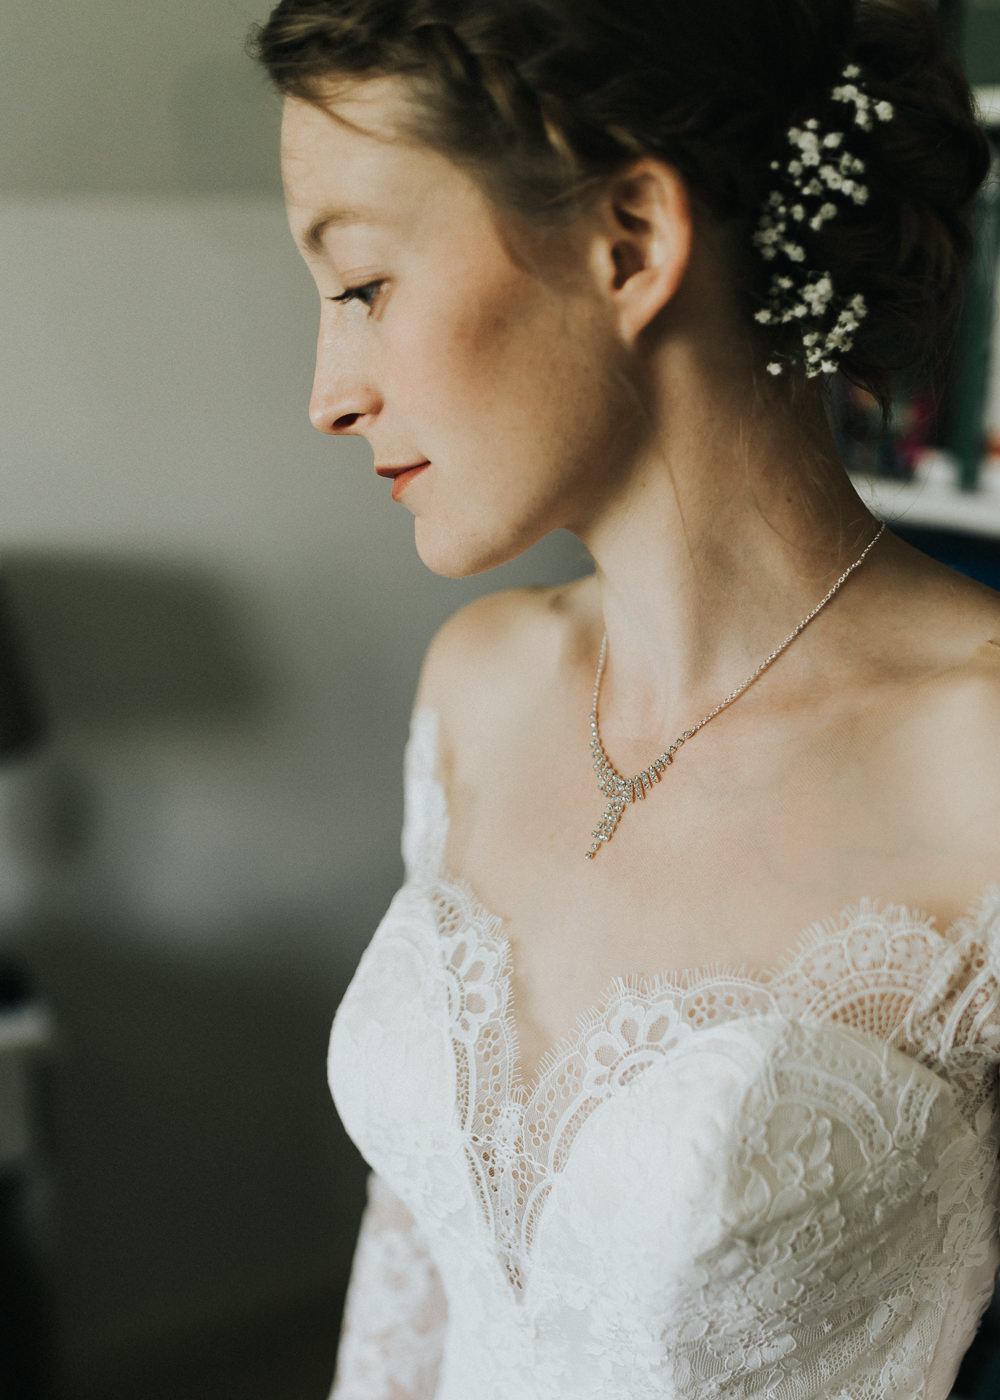 Lace Dress Gown Bride Bridal Sleeves Buttons Illusion Plunge Long Make Up Countryside Wedding Cotswolds Kate Waters Photography